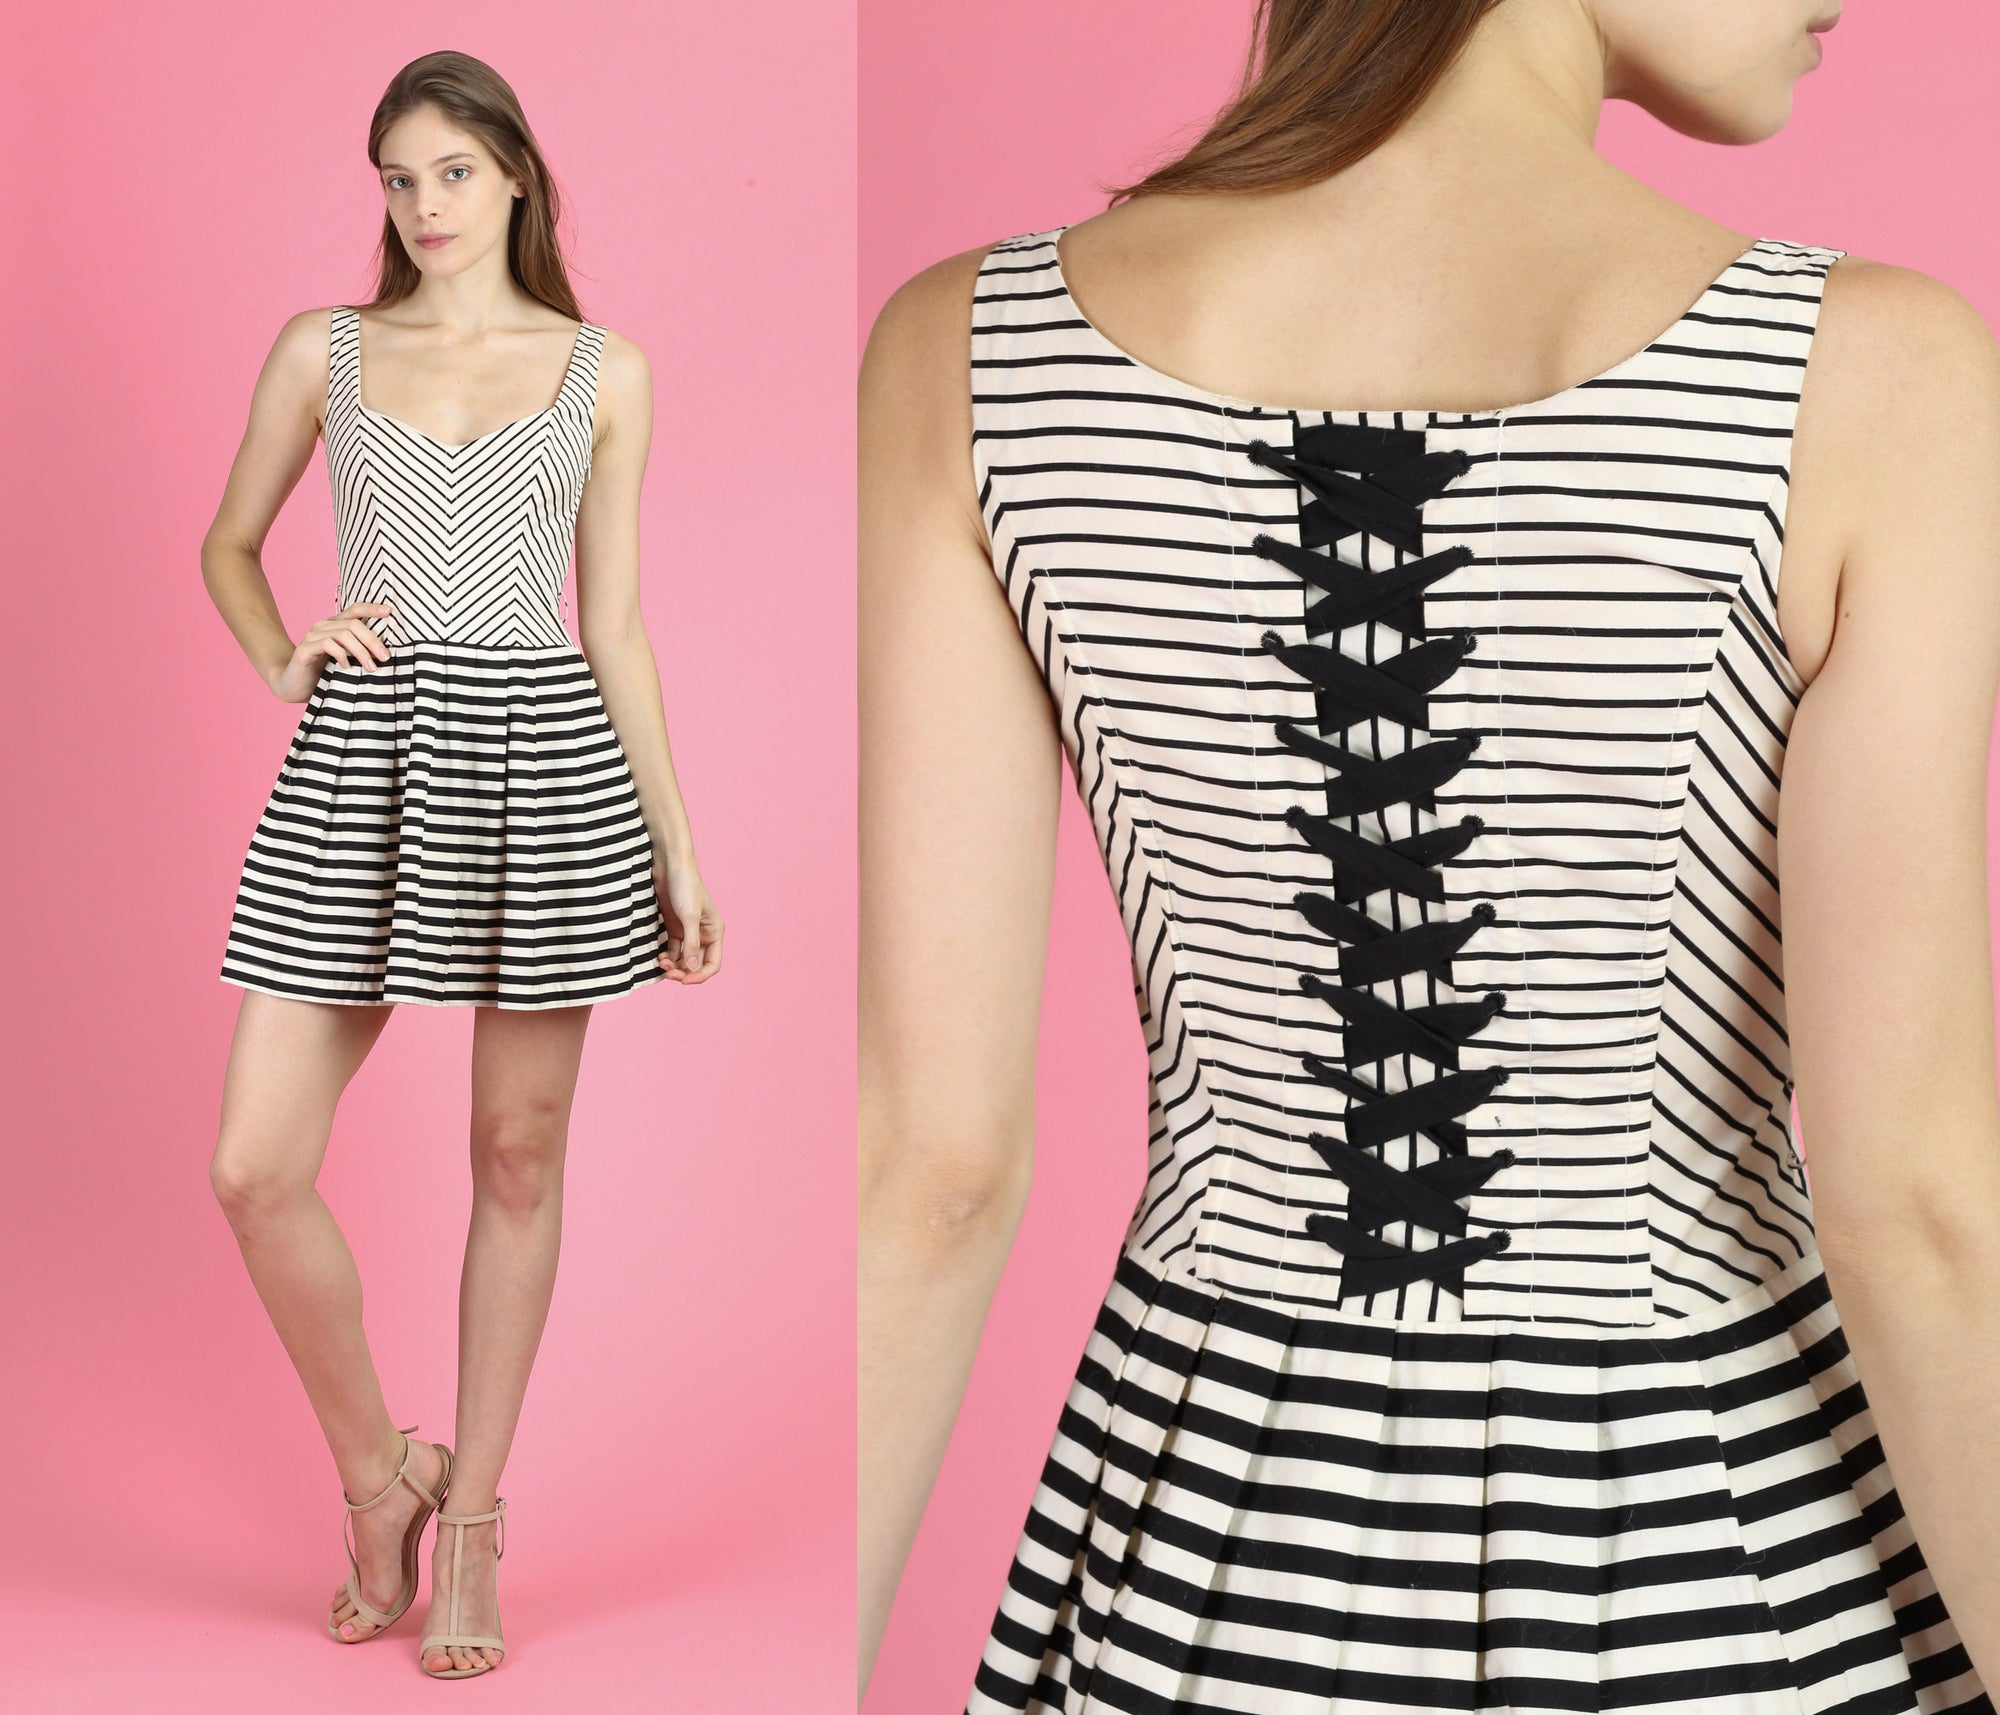 Nautical Corset Mini Dress - Extra Small